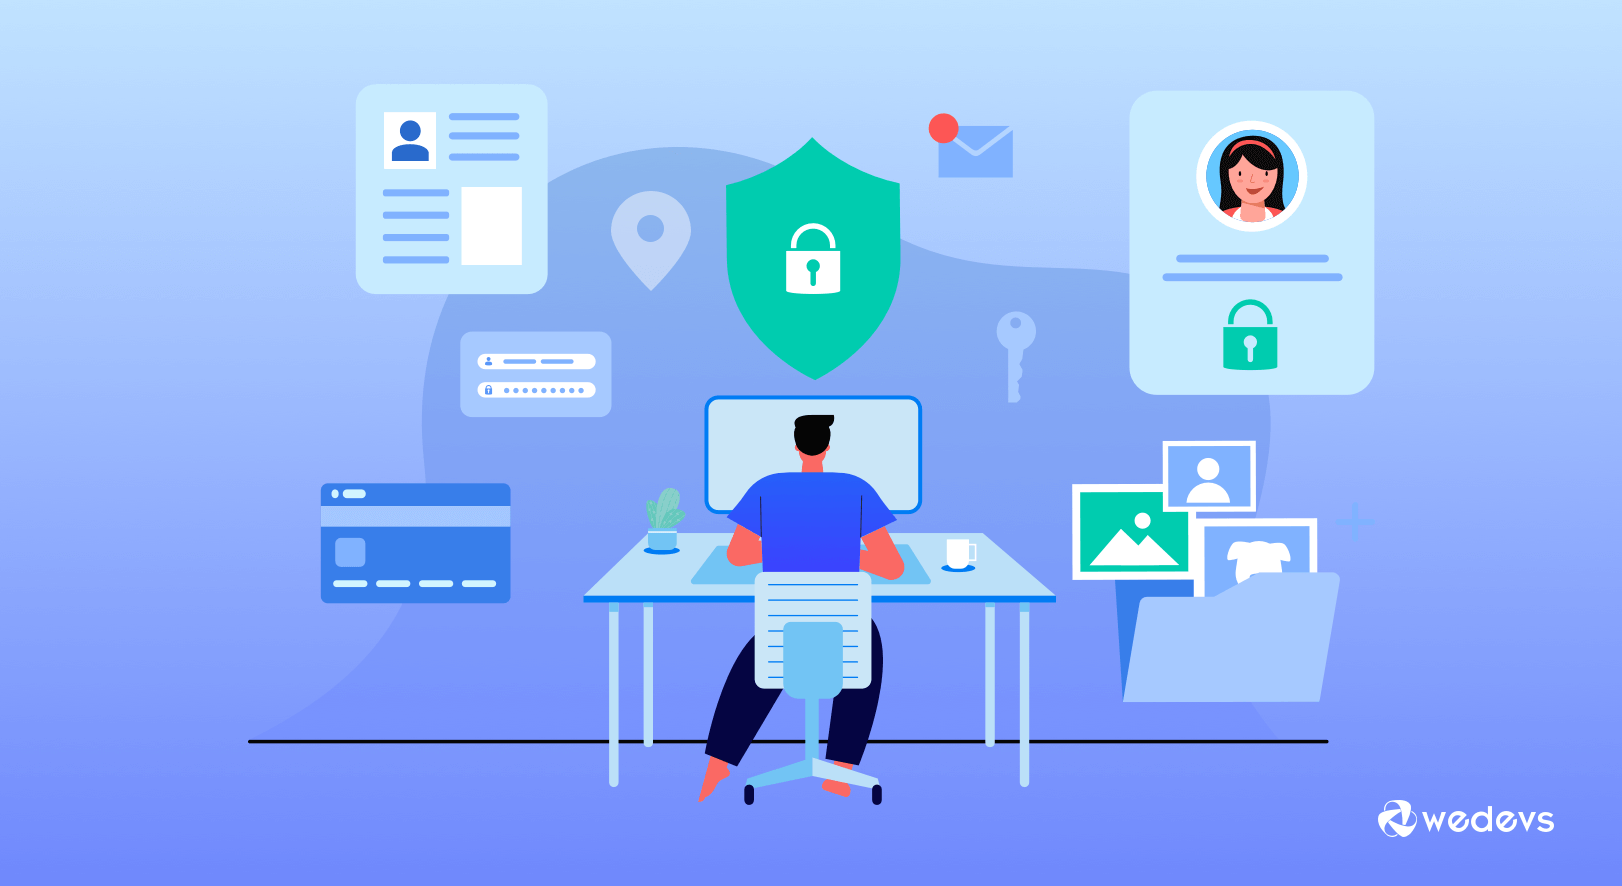 5 Simple Tips to Protect Yourself Online in 2021